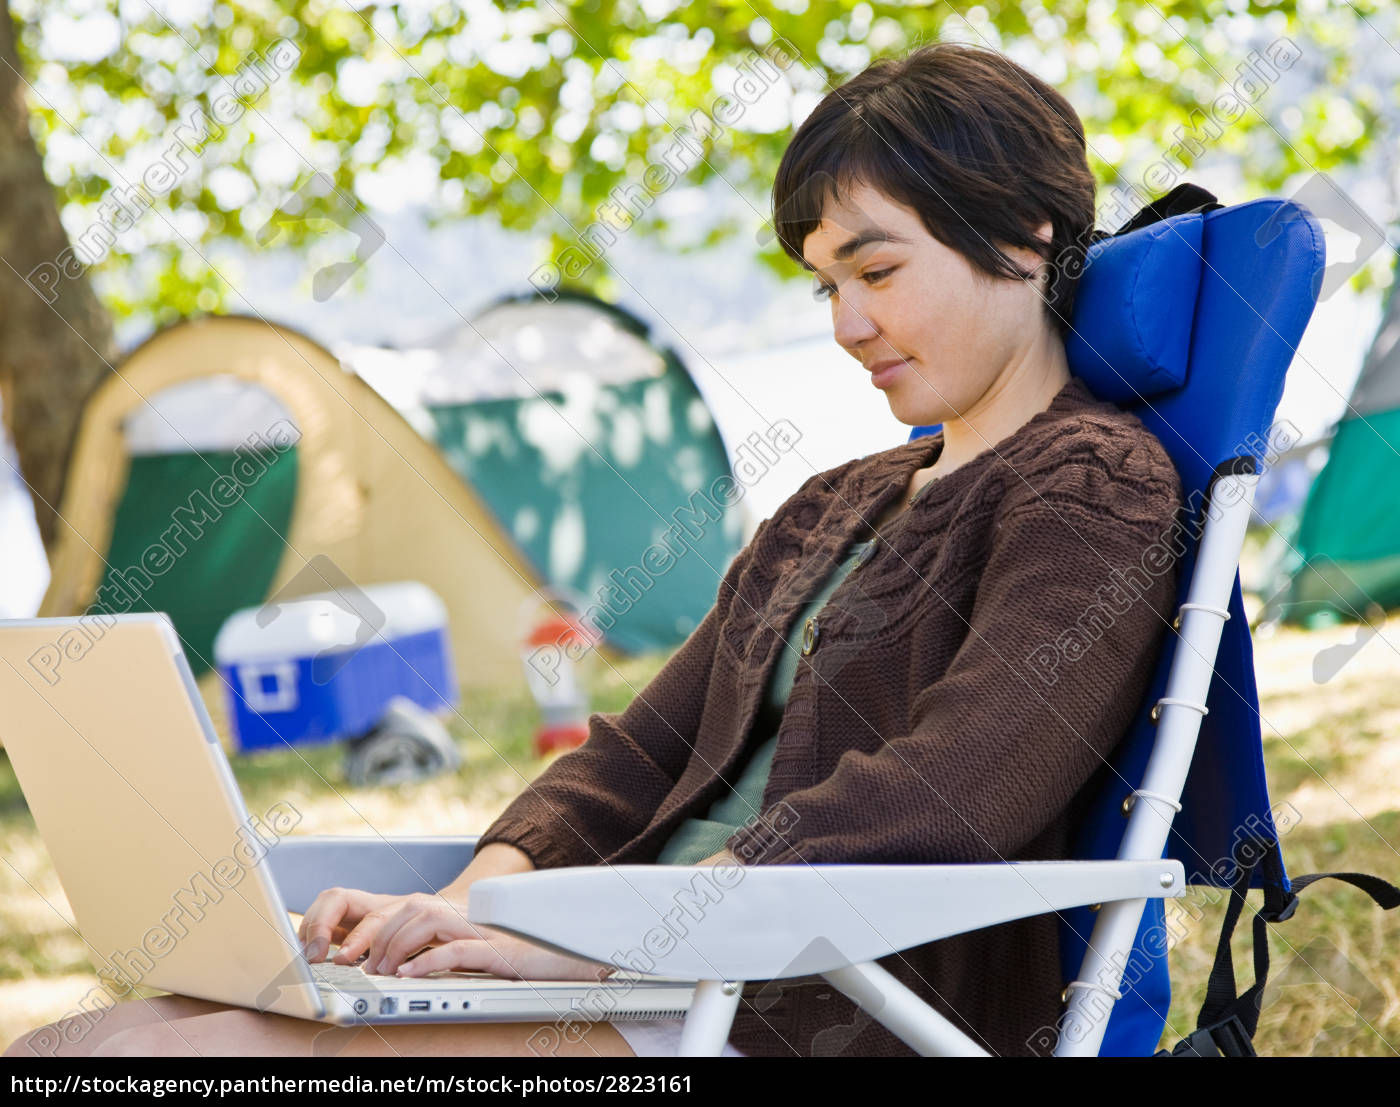 camper, using, laptop - 2823161